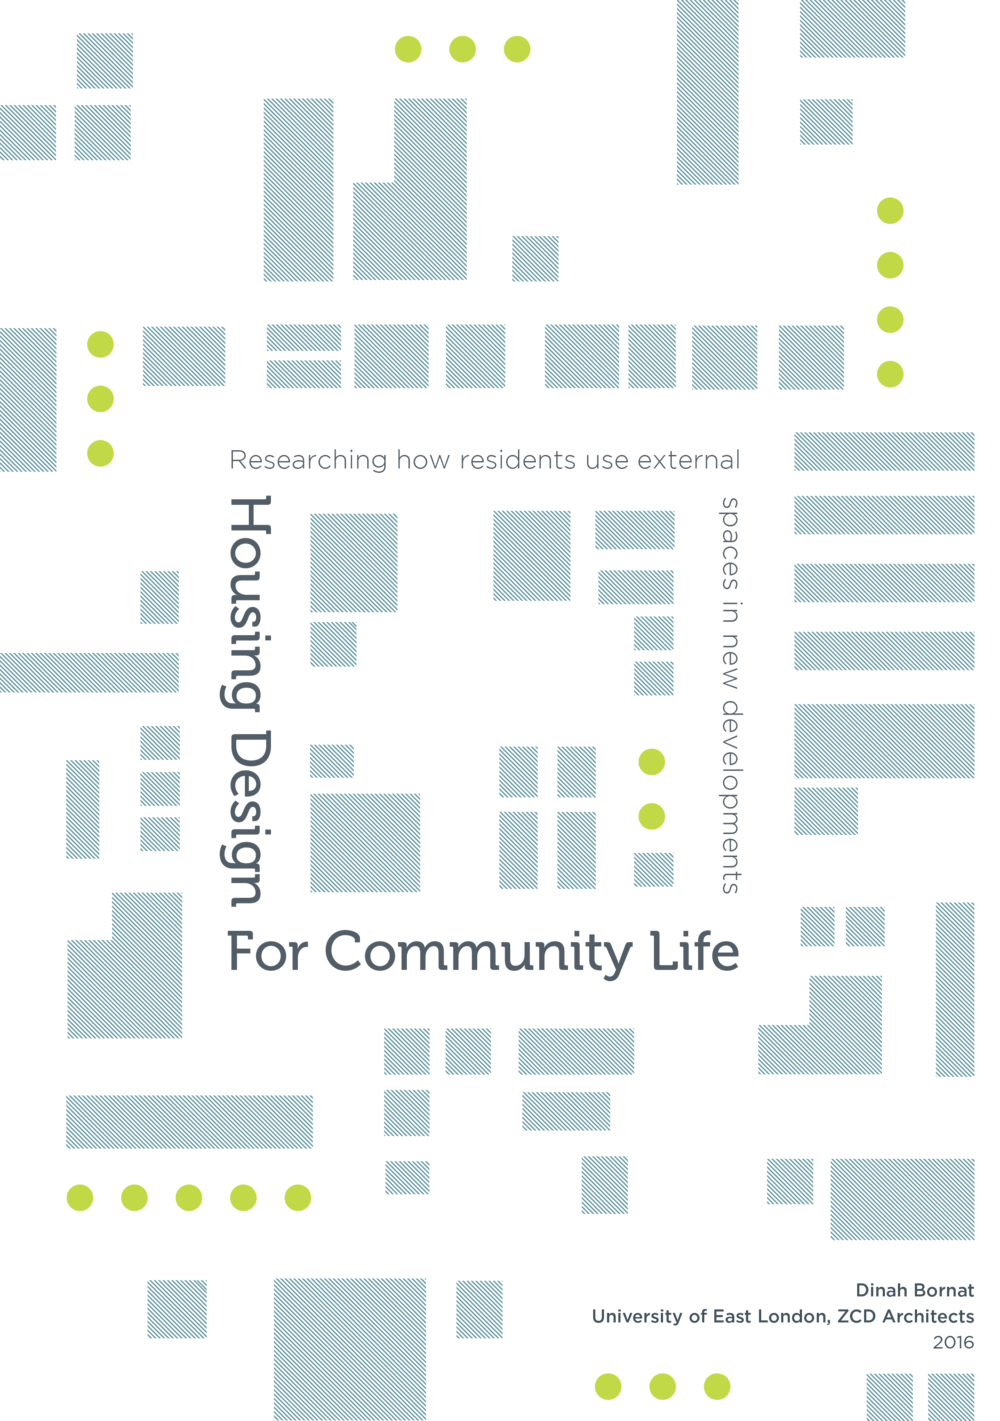 Housing Design for Community Life